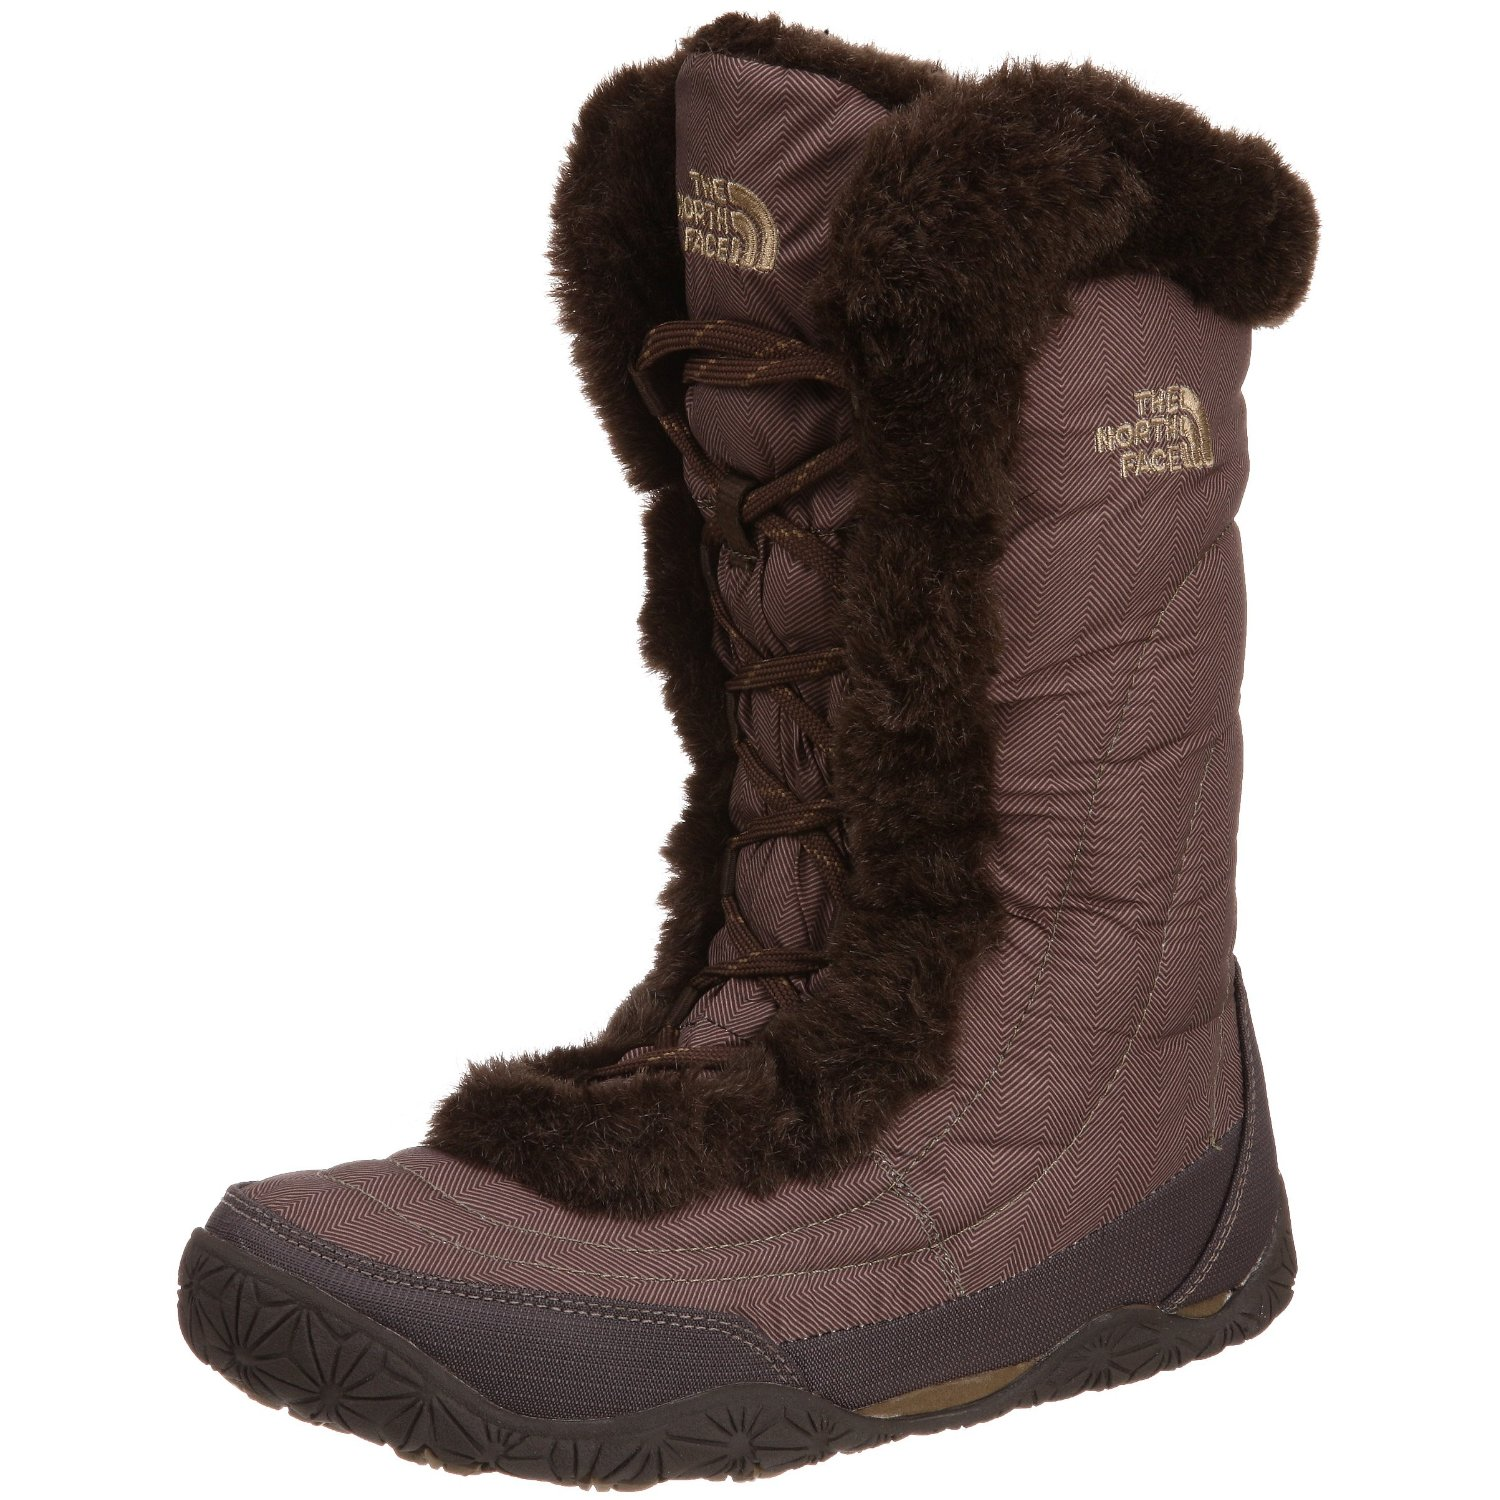 Wonderful The North Face Janey Ll Luxe Boots - Womens | Jans.com